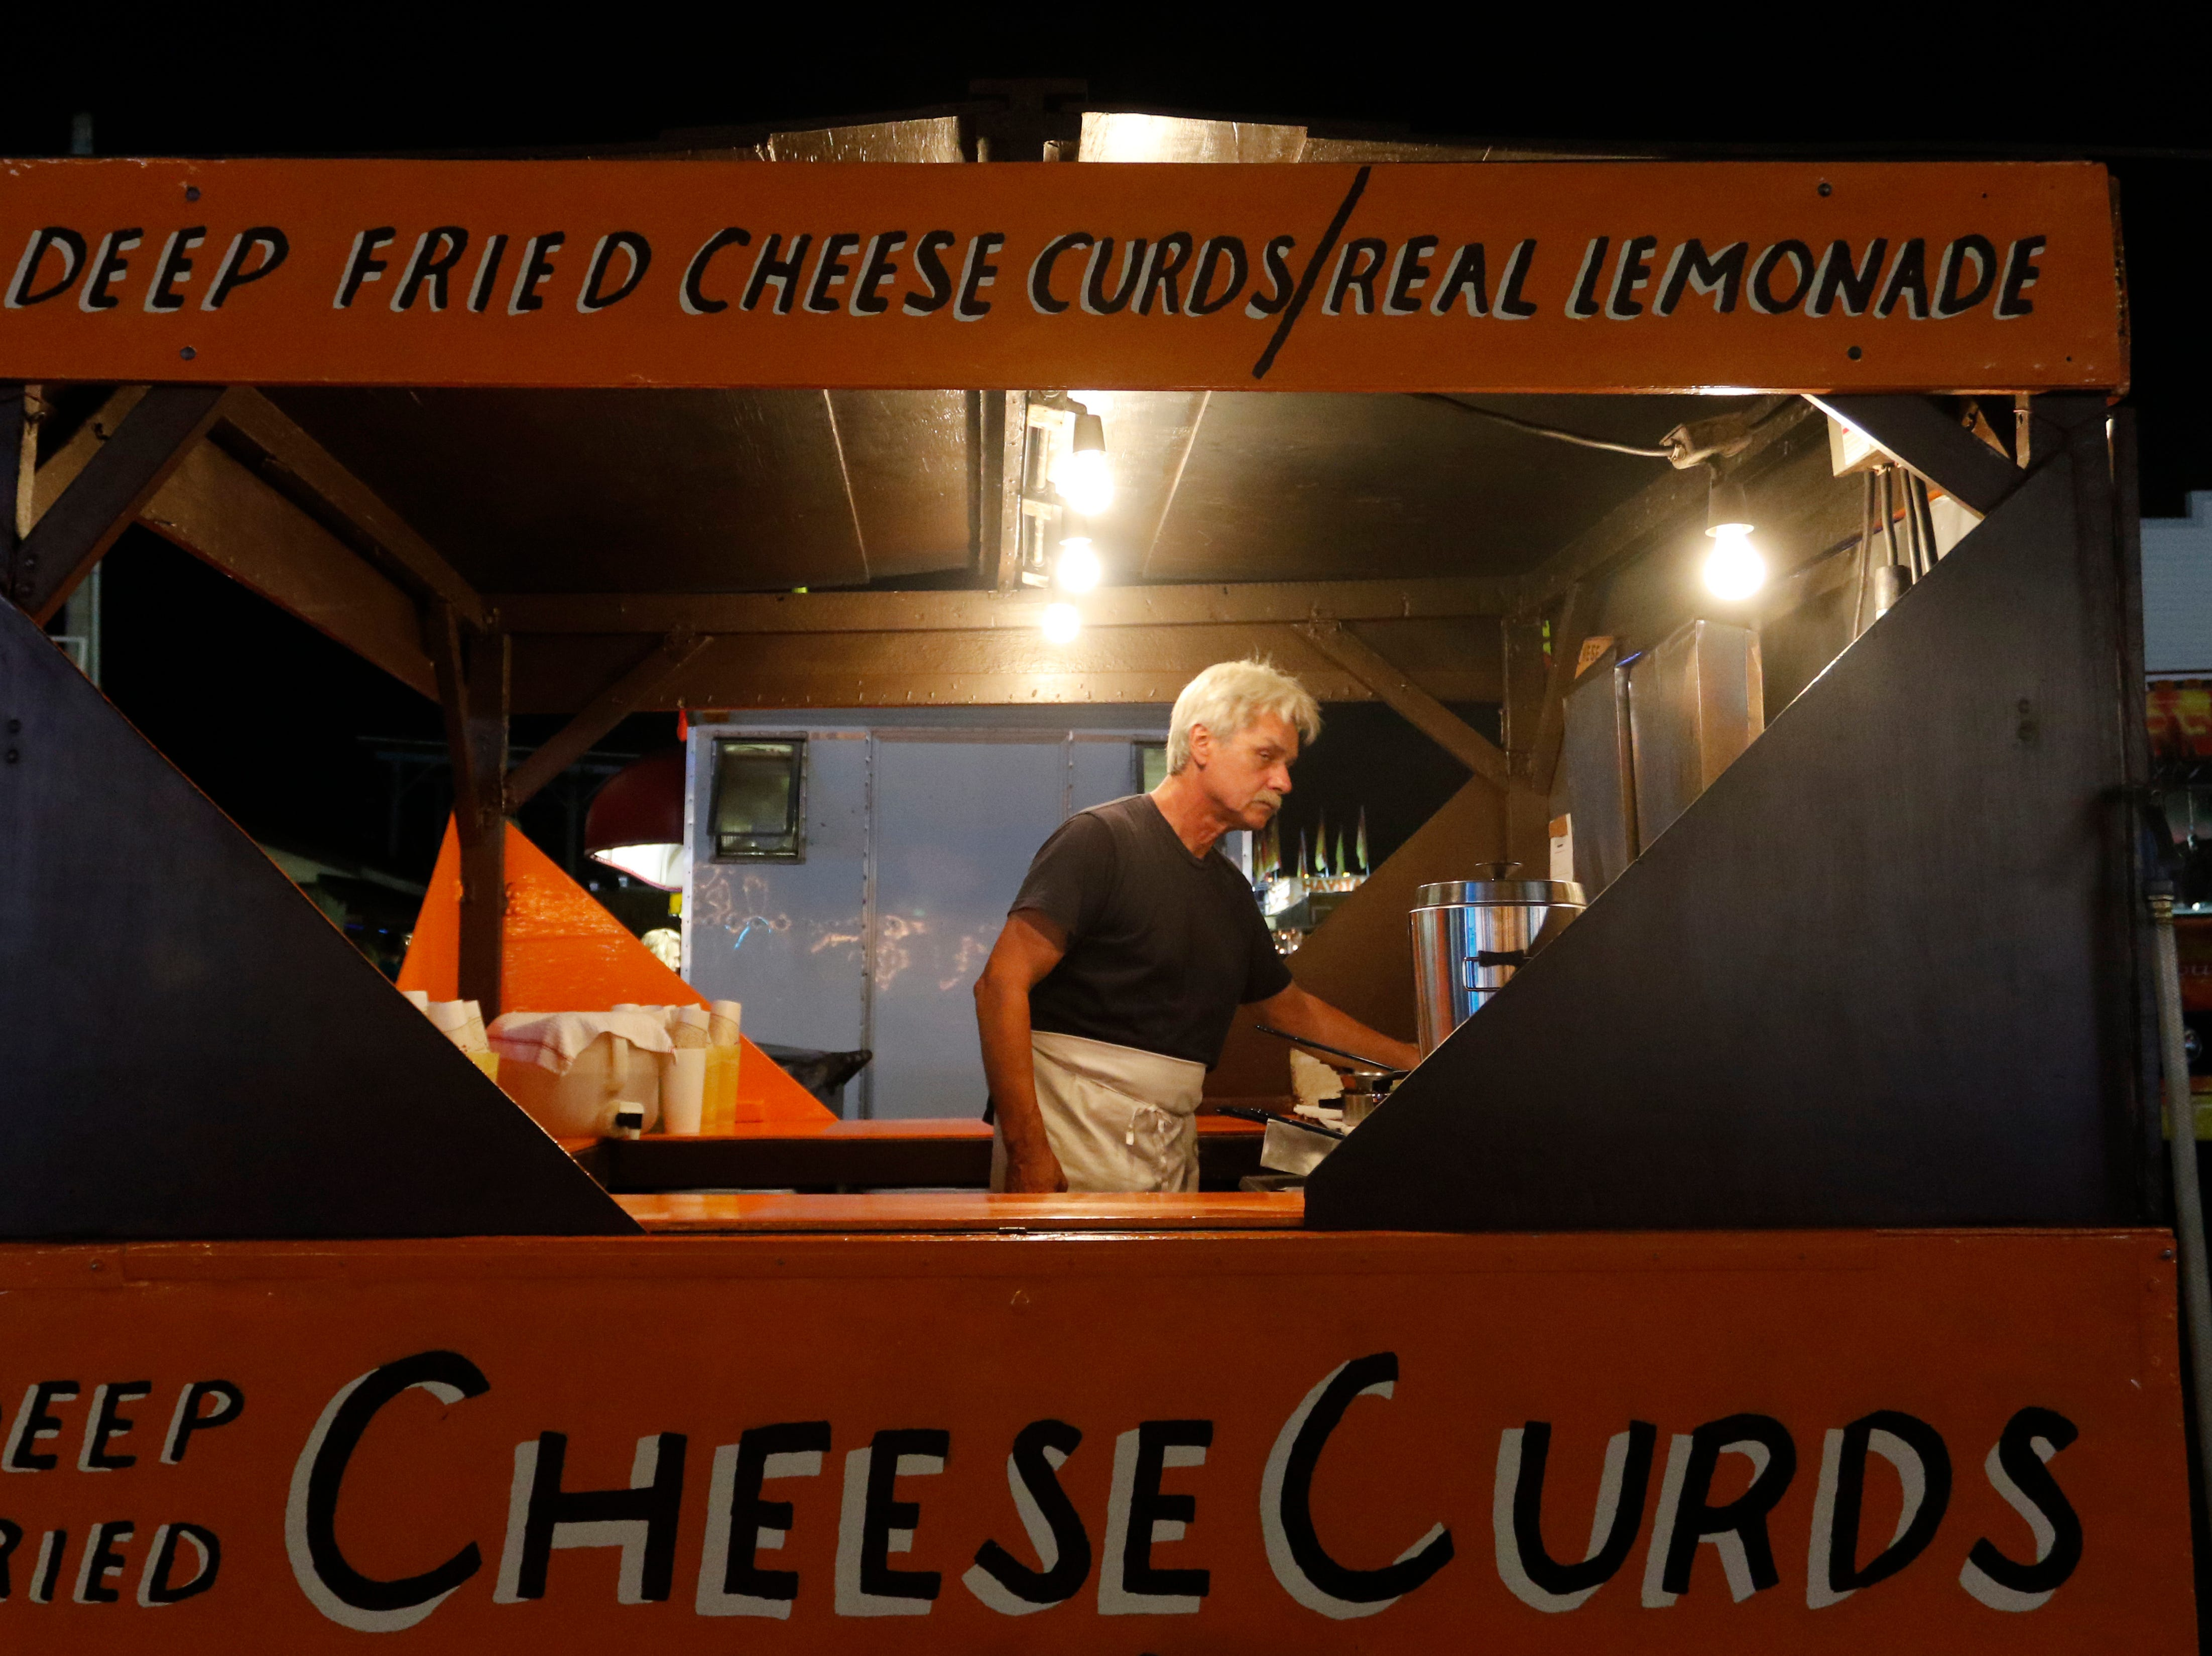 Louis Meyer works in the cheese curds and real lemonade stand  at the Central Wisconsin State Fair in Marshfield Wednesday, August 22, 2018.